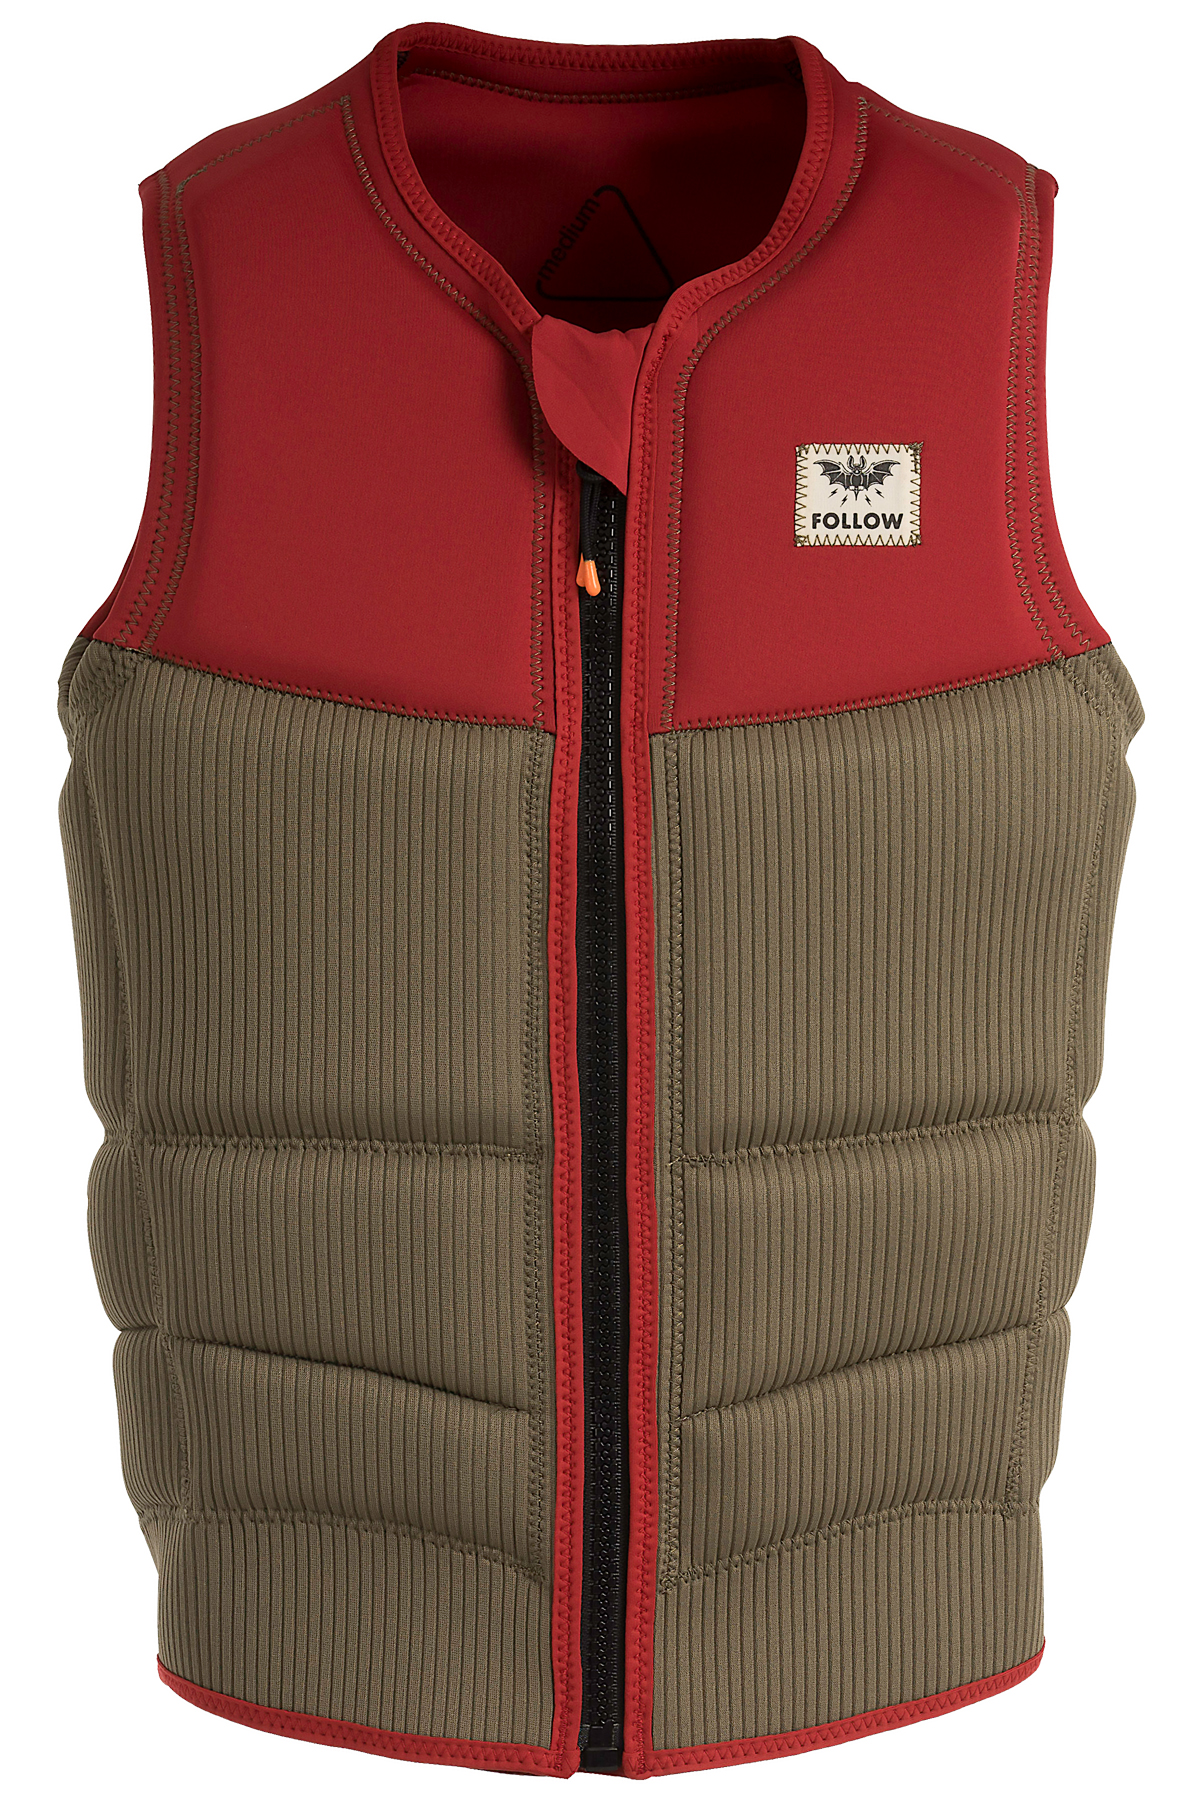 MITCH PRO IMPACT VEST - DUSTY RED FOLLOW 2019